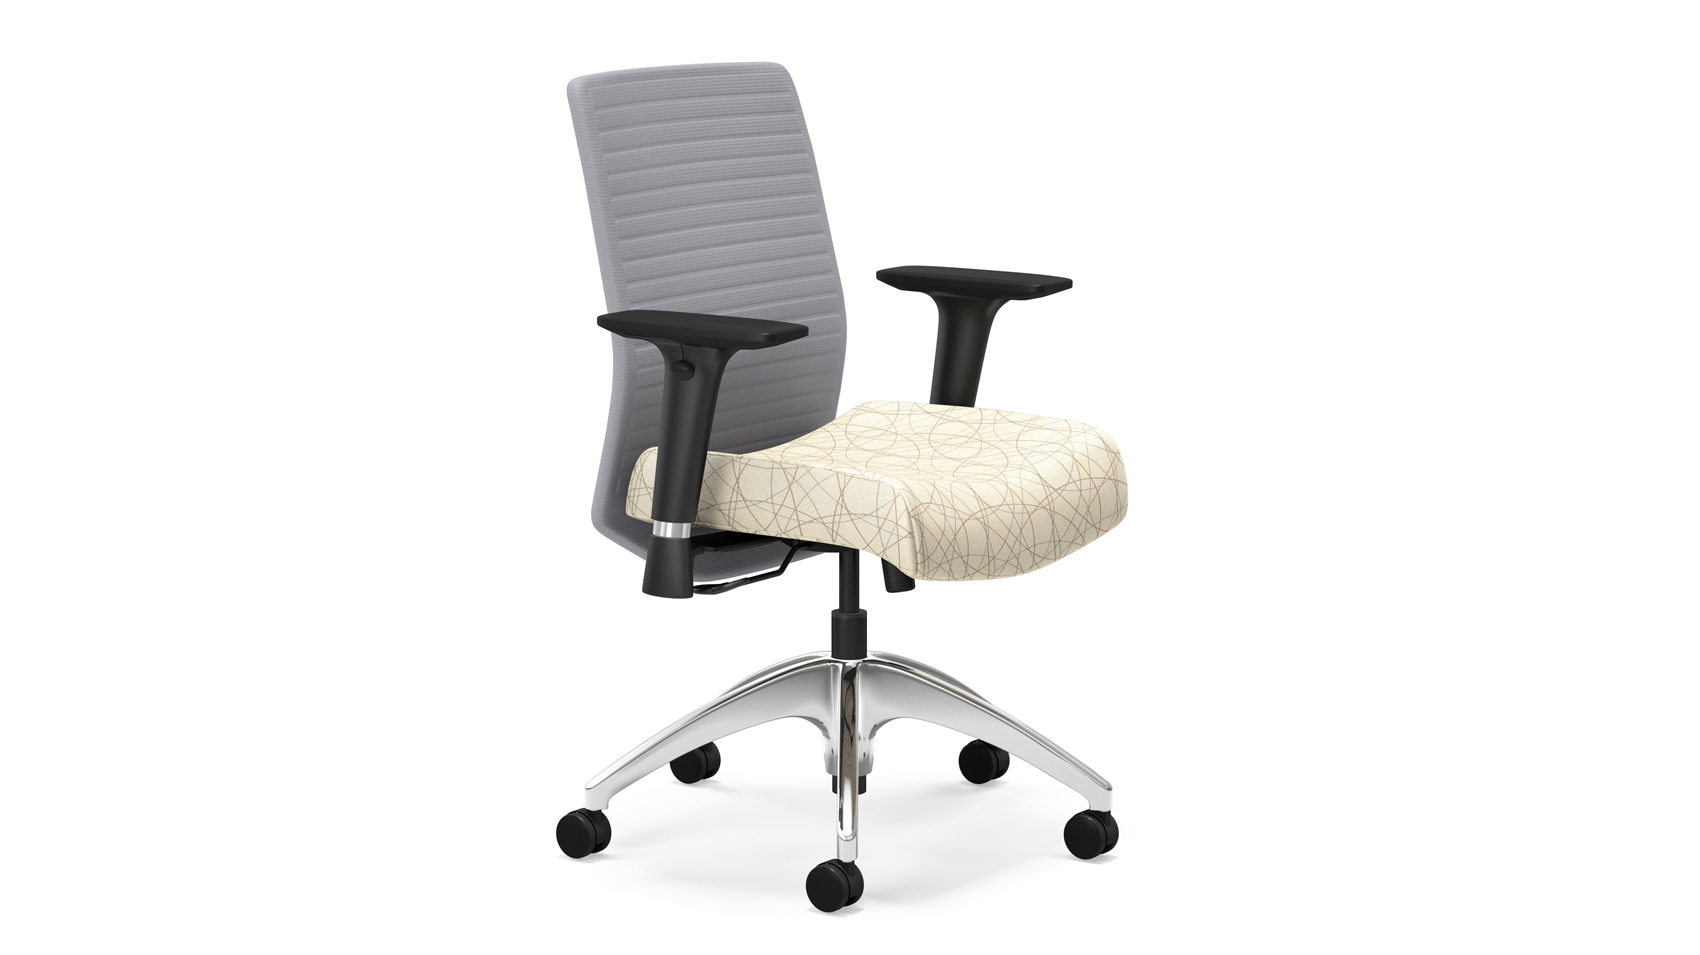 Terrific Wow Highmark Hb Office Chairs Seating Made Simple Dailytribune Chair Design For Home Dailytribuneorg